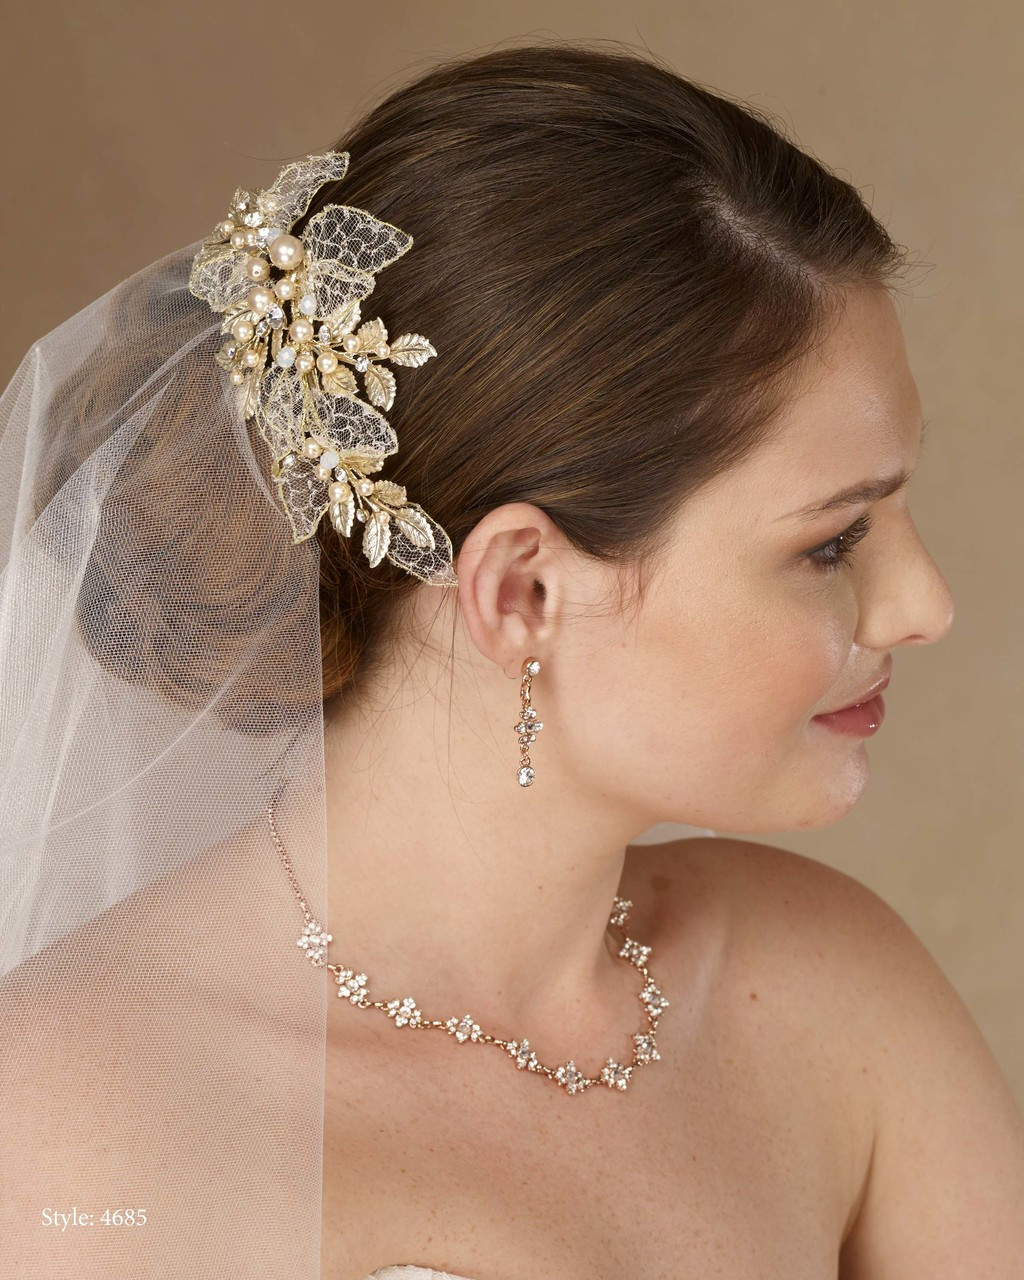 Marionat Bridal 4685 Gold clip with lace leaves, rhinestone and gold pearls - Le Crystal Collection